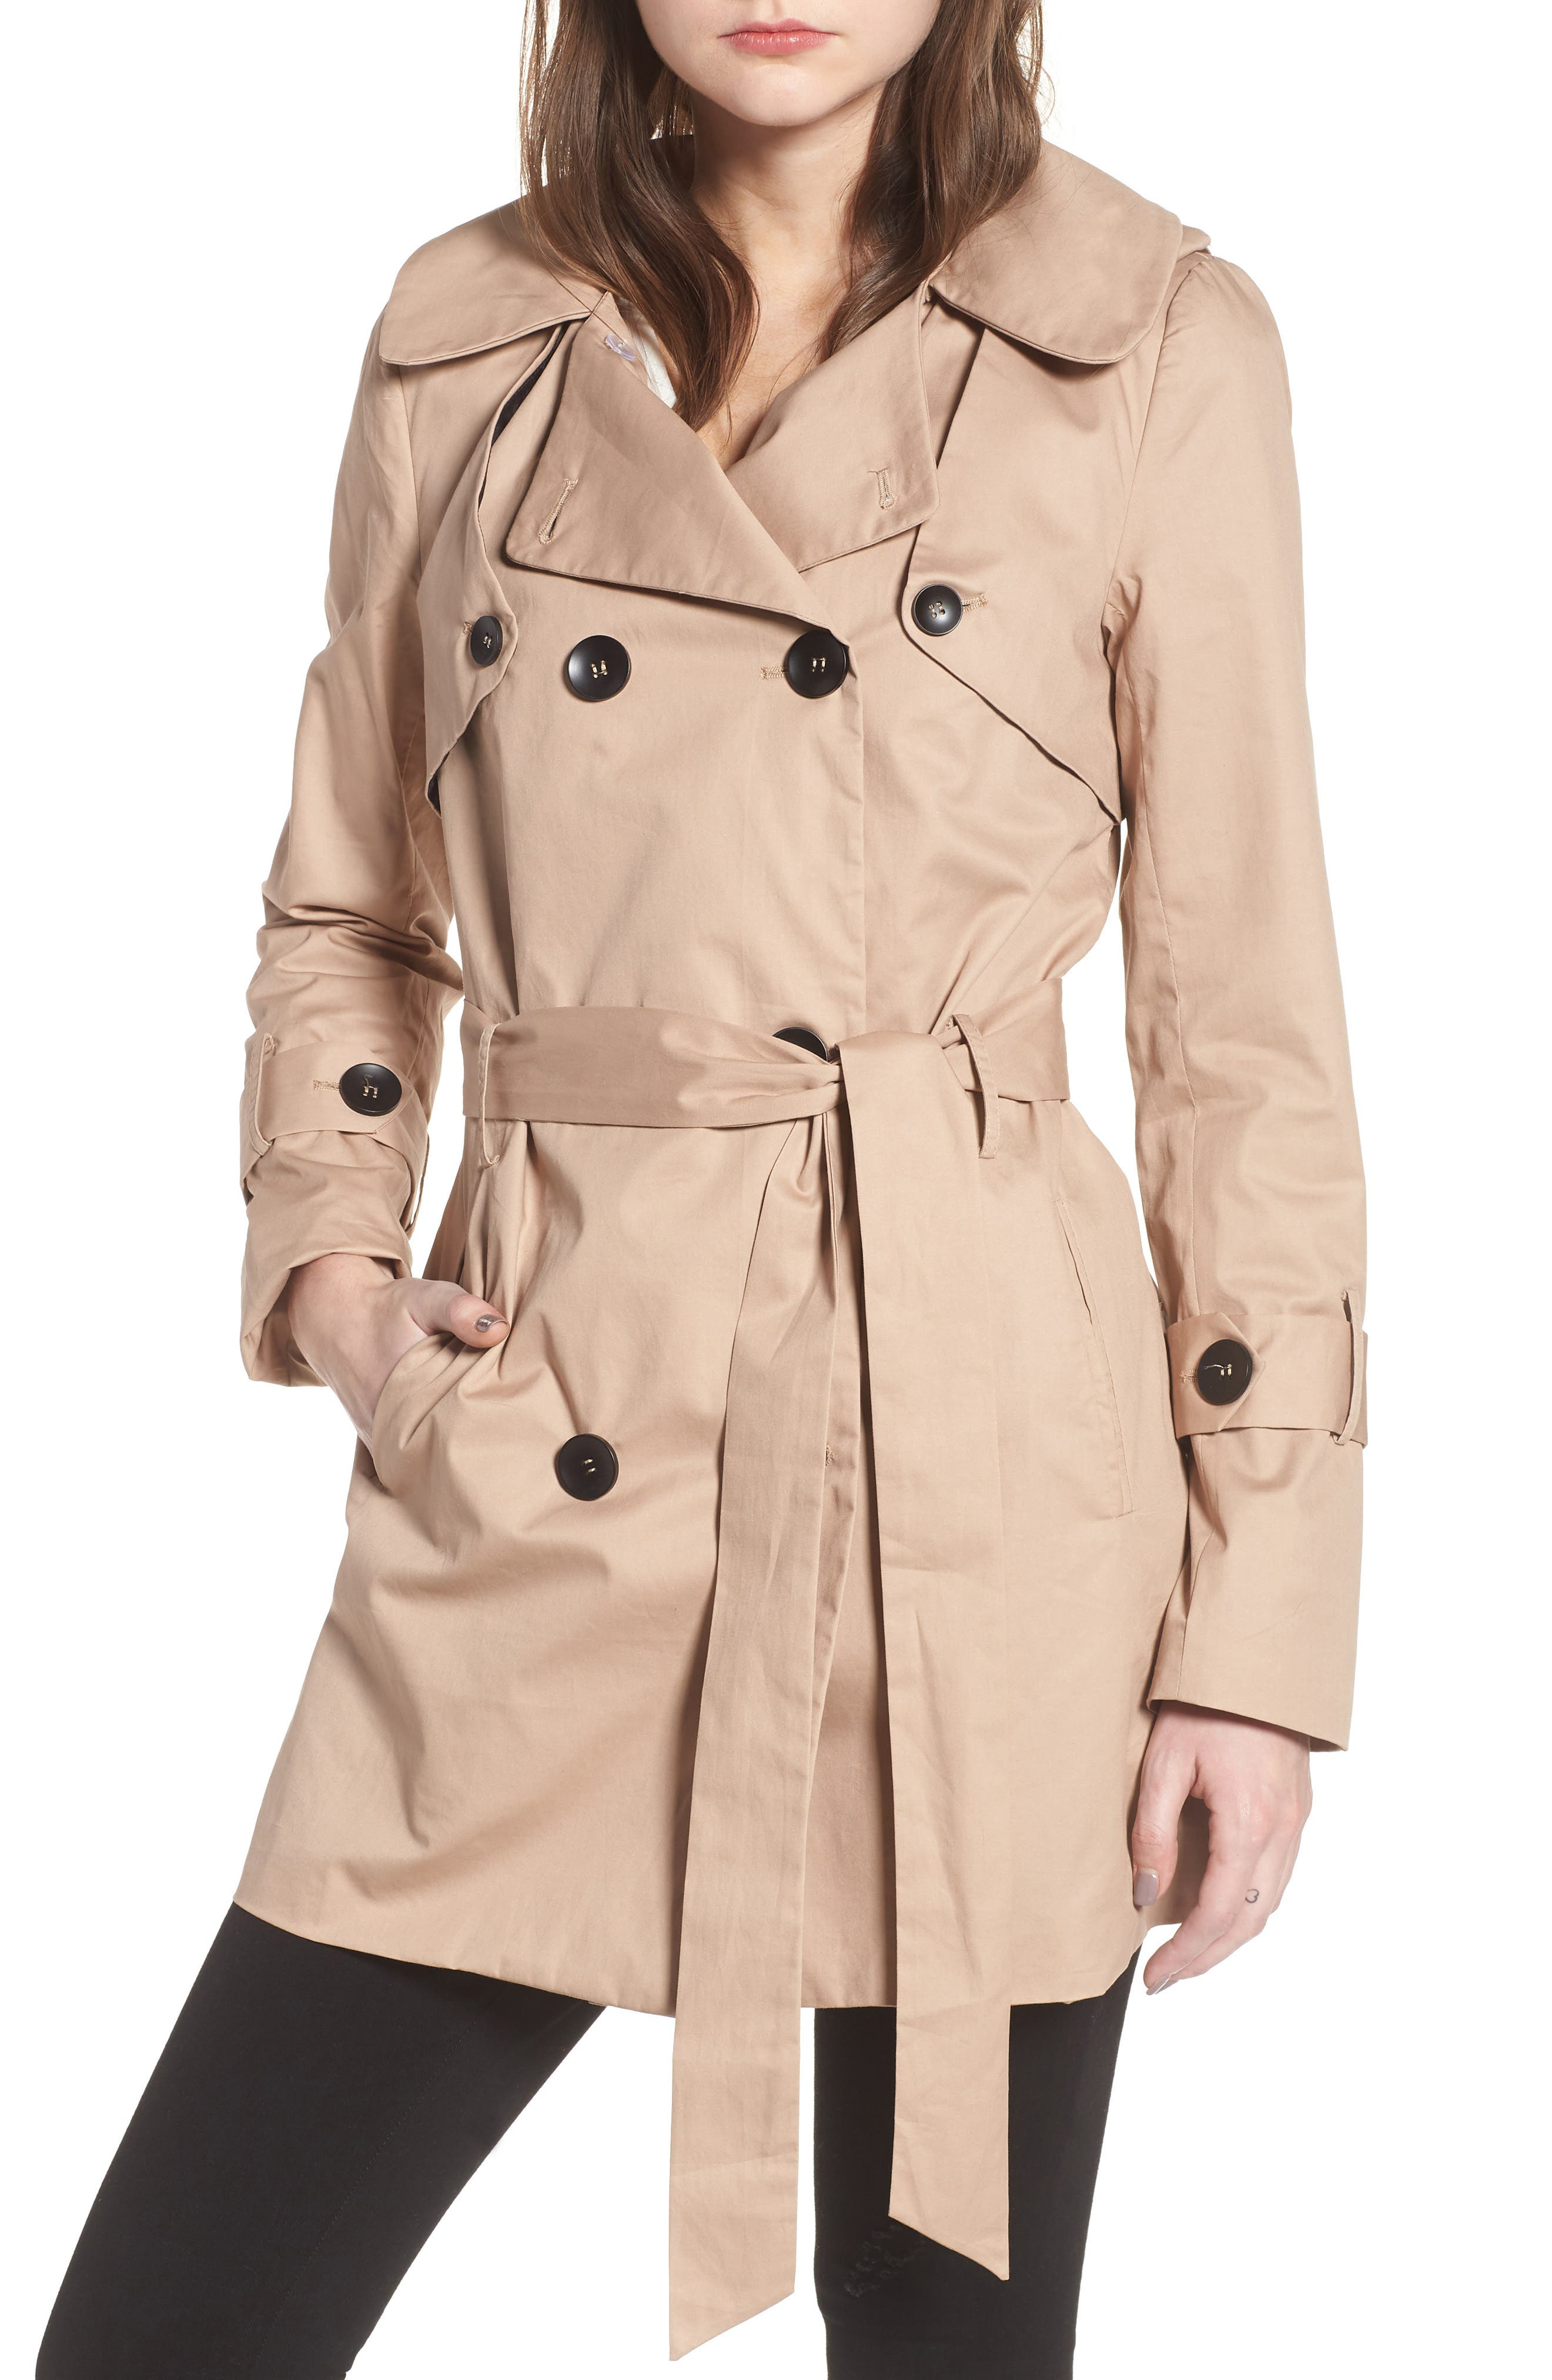 Moss Trench Coat,                             Alternate thumbnail 4, color,                             250